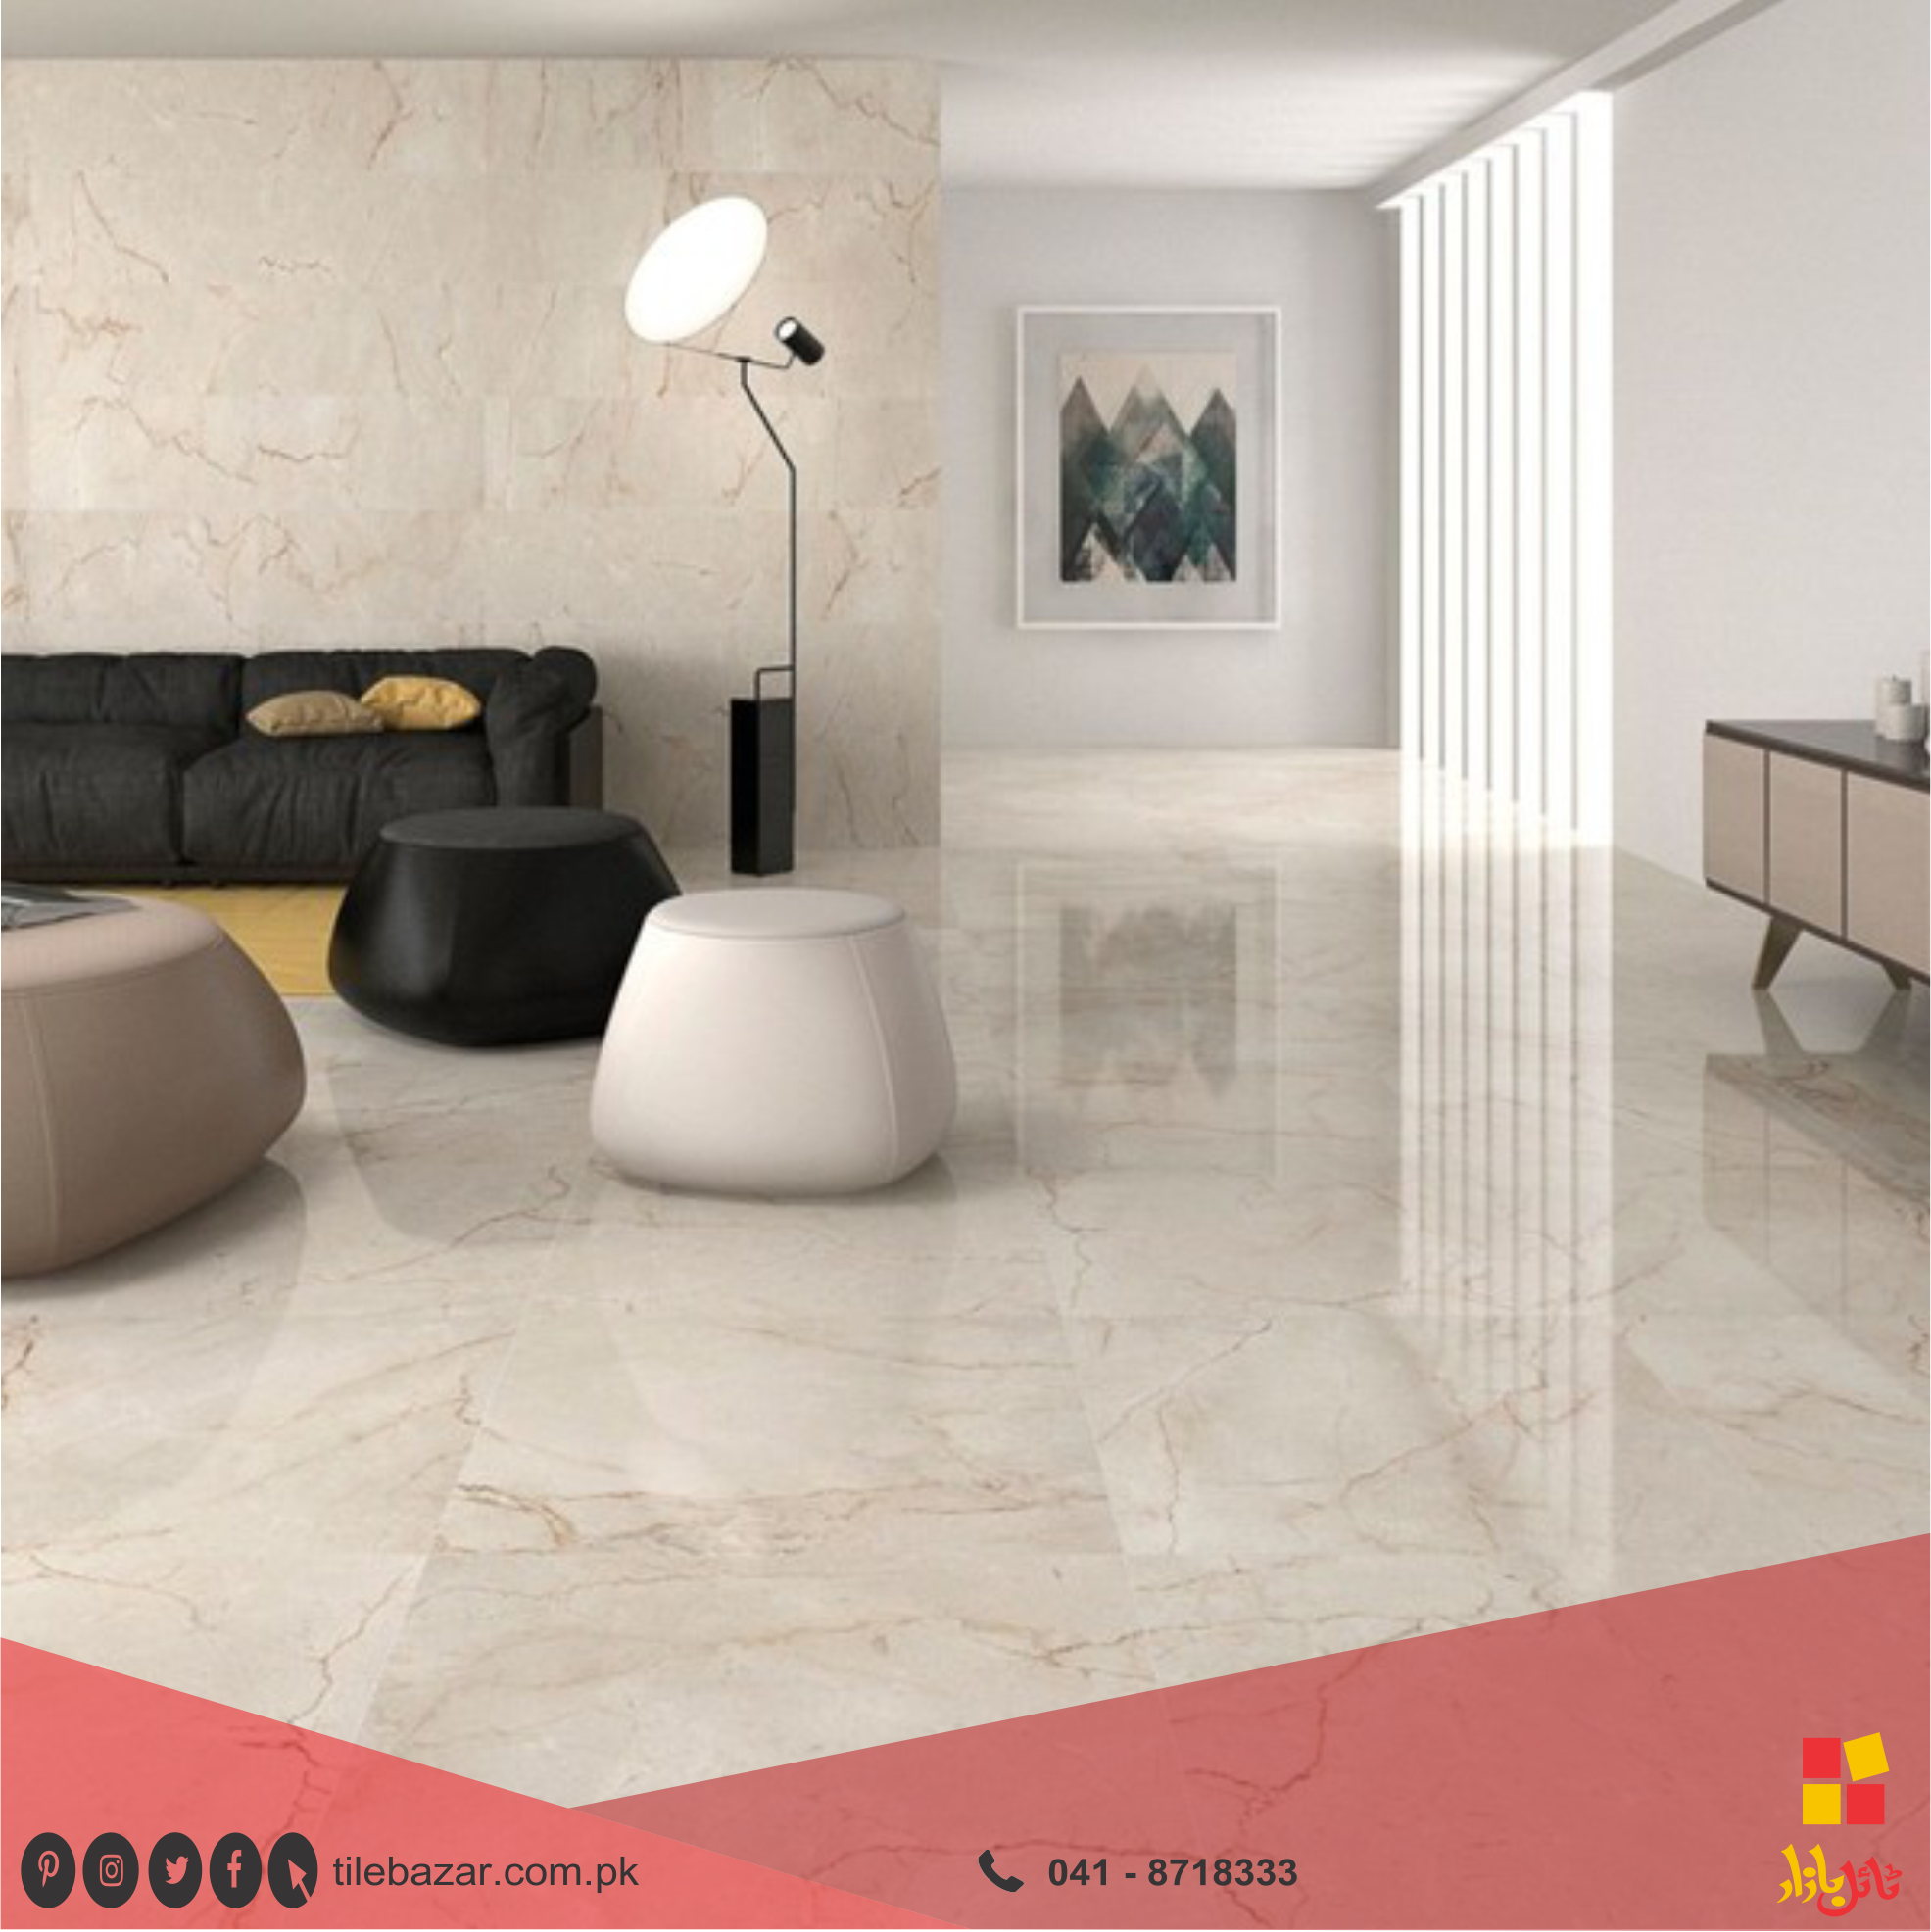 Give Your Floor Ideal Look With These Tiles Floortiles Walltiles Ceremicstile Porcelaintile H Living Room Tiles Tile Floor Living Room Floor Tile Design